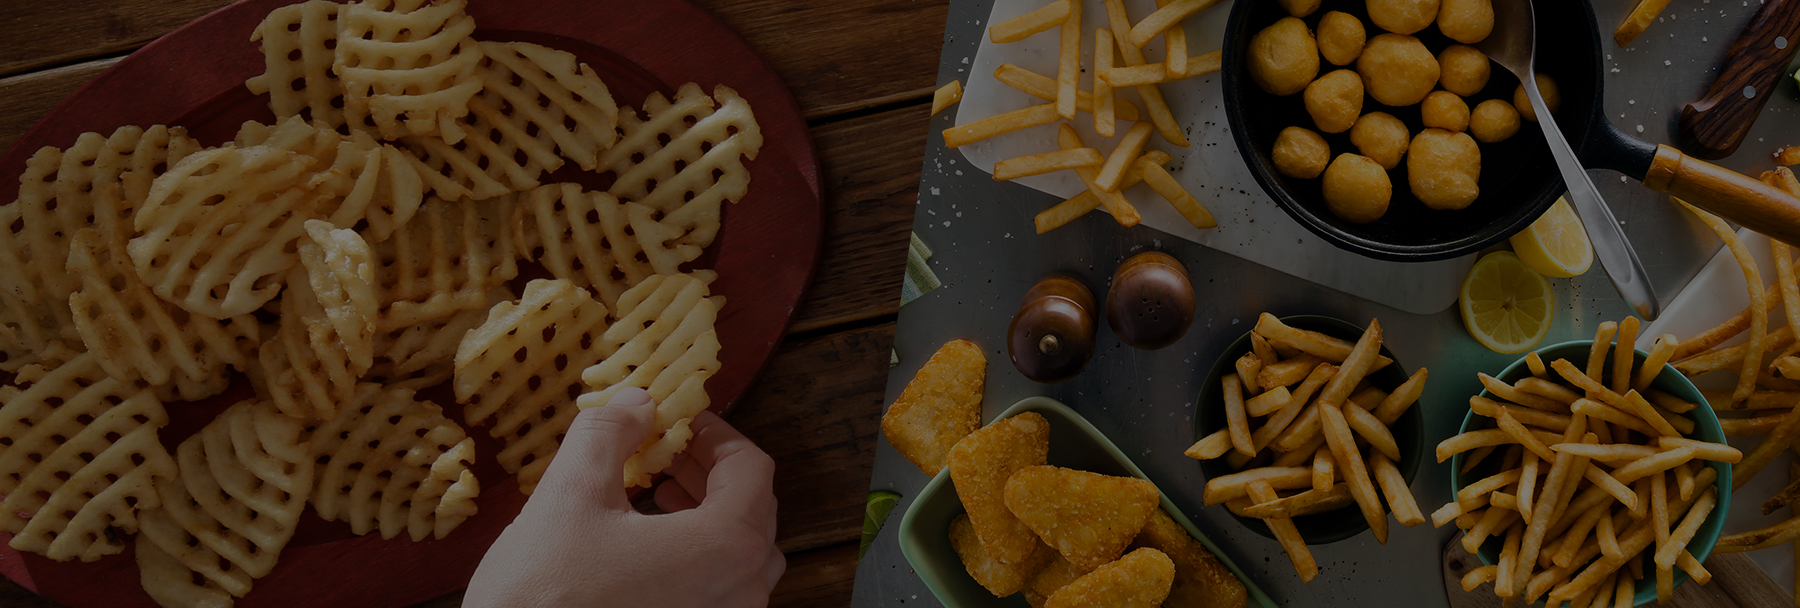 Mccain lattice fries and other potato products